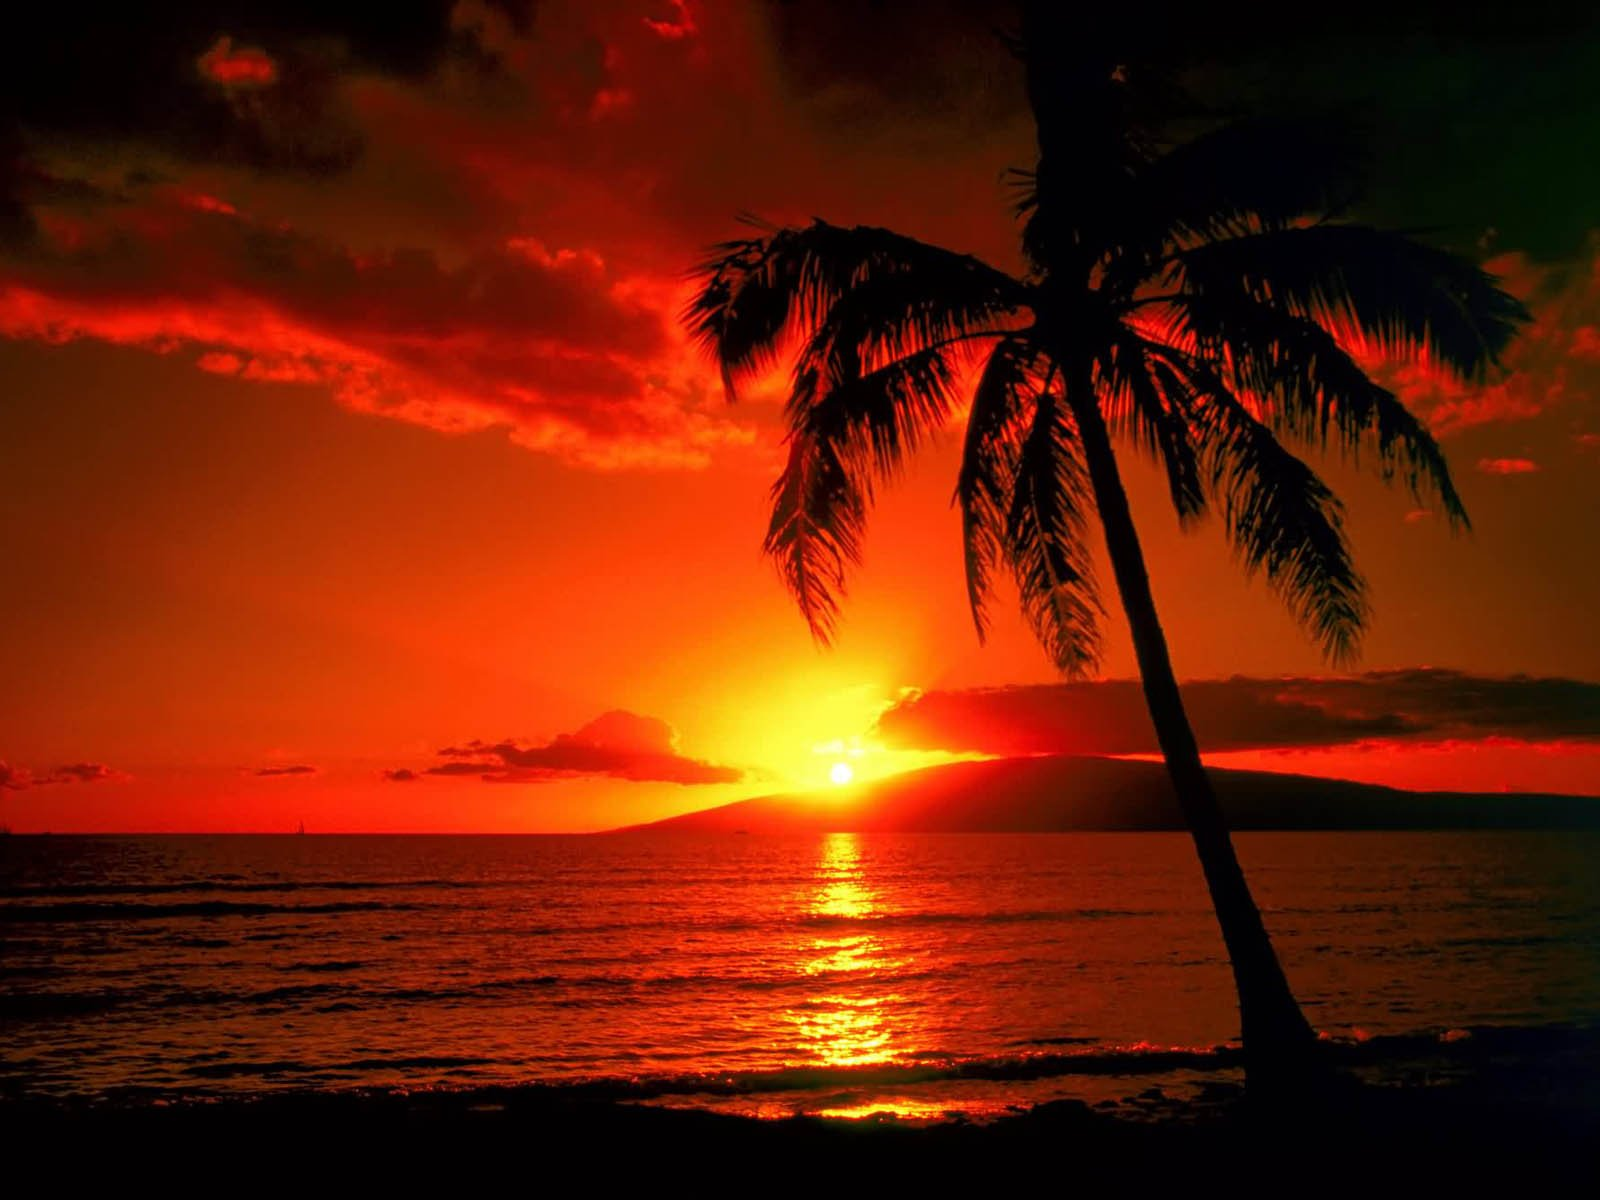 Island Sunset Wallpapers Images Photos Pictures and Backgrounds 1600x1200